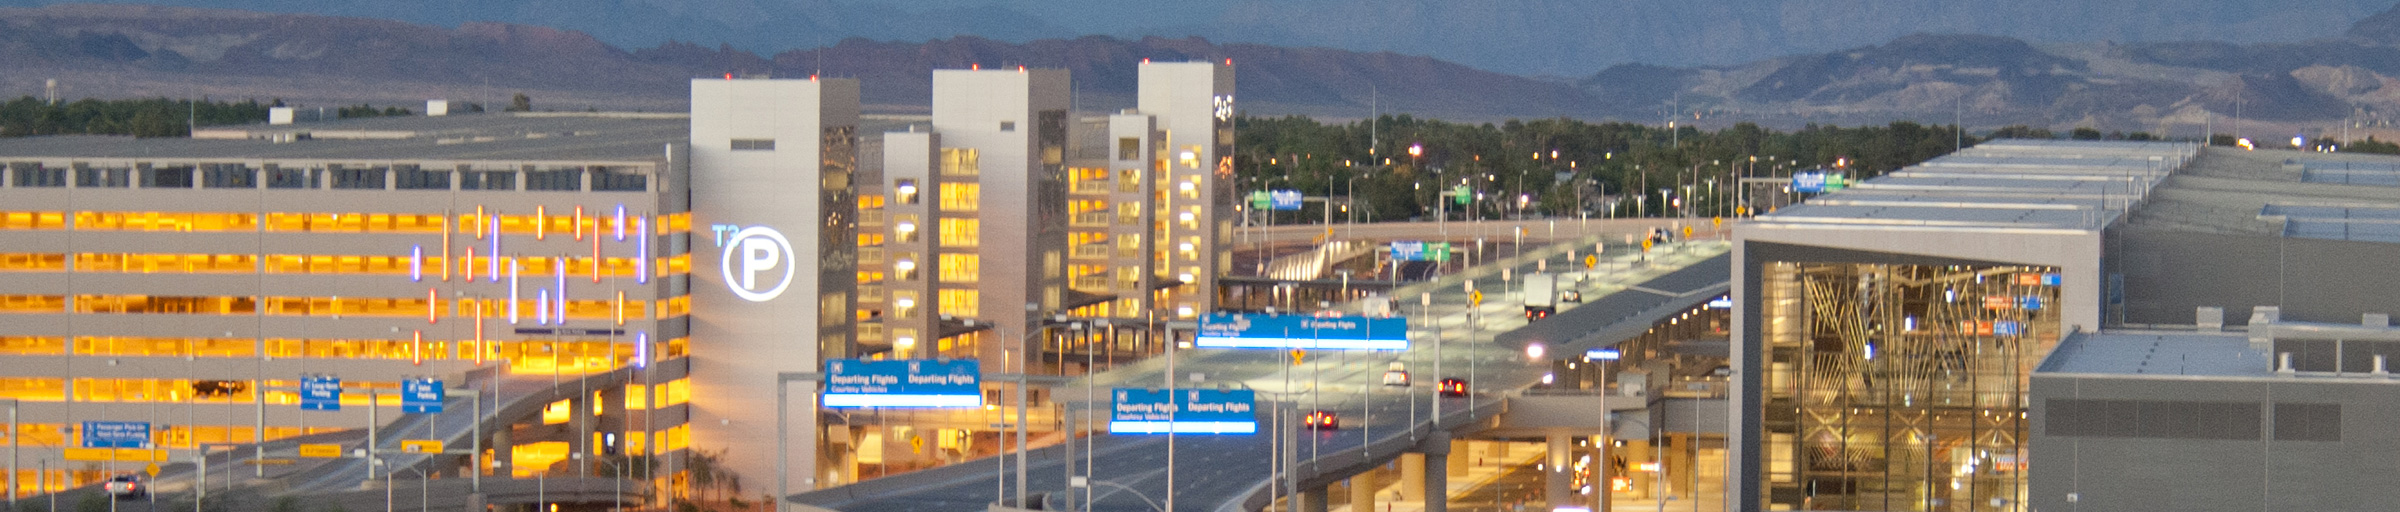 Ground Transportation at McCarran